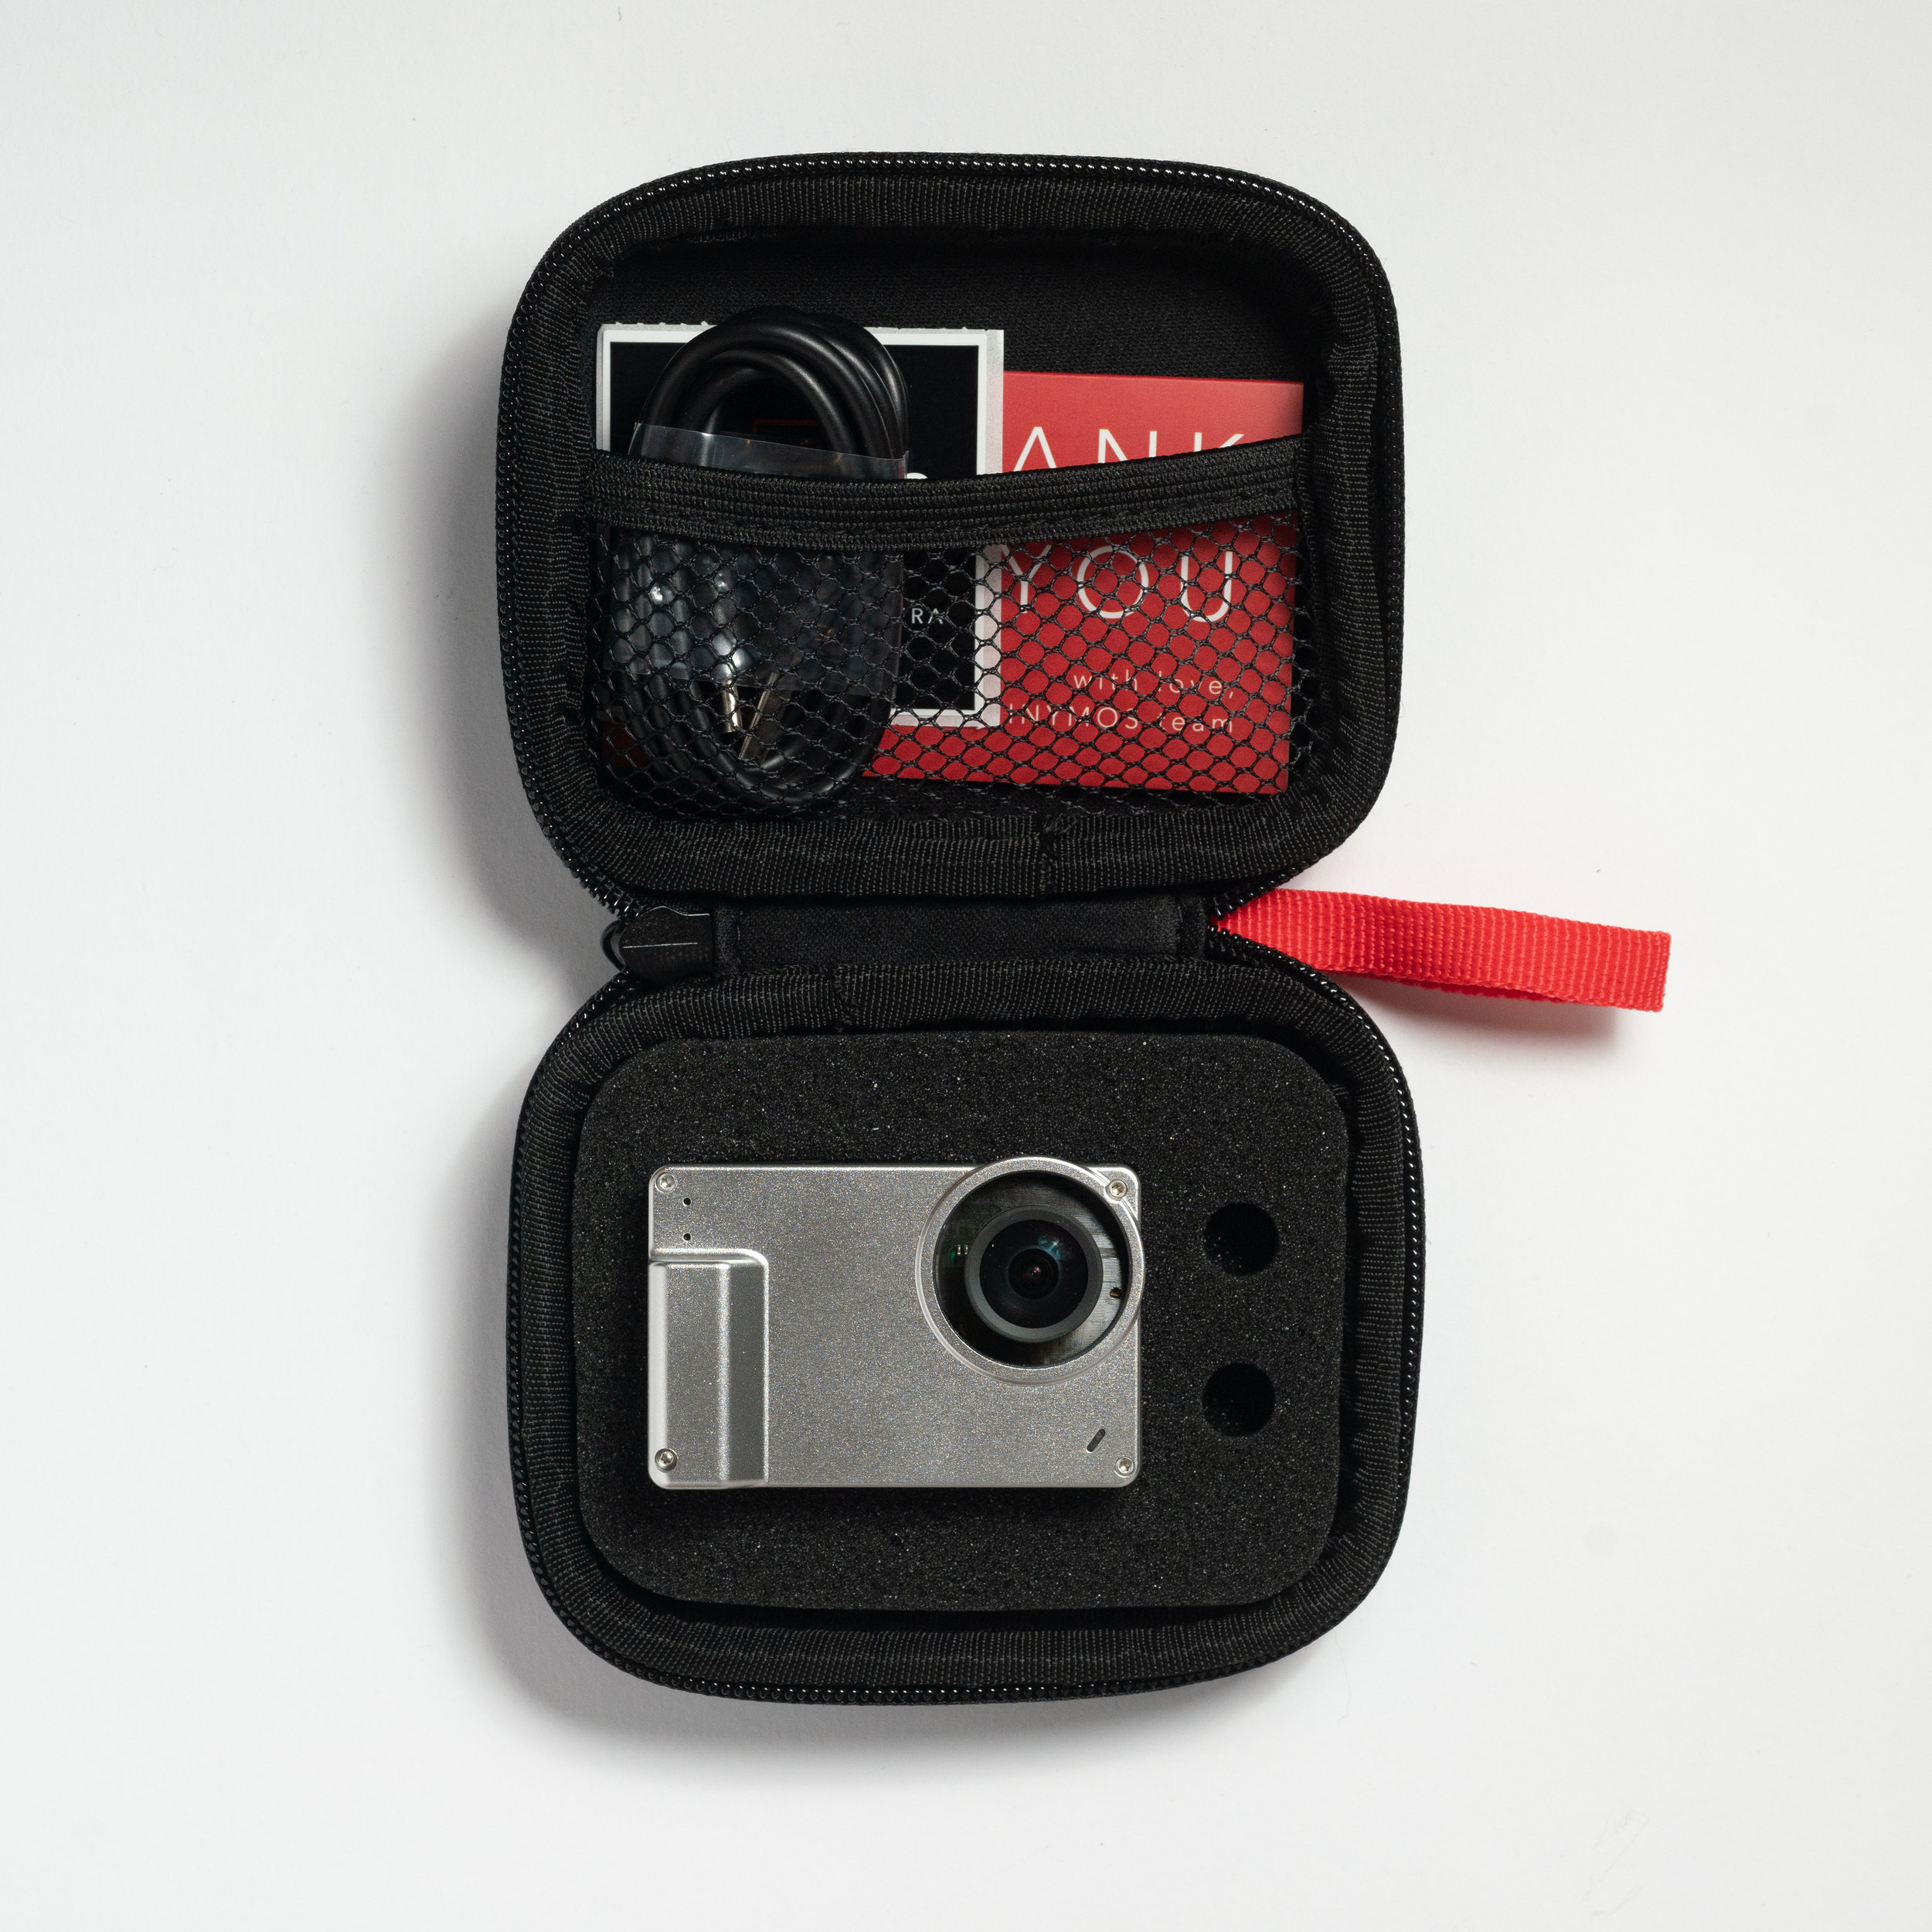 Inside, the case allows you to carry the camera, charging cable and 2 additional M12 lenses